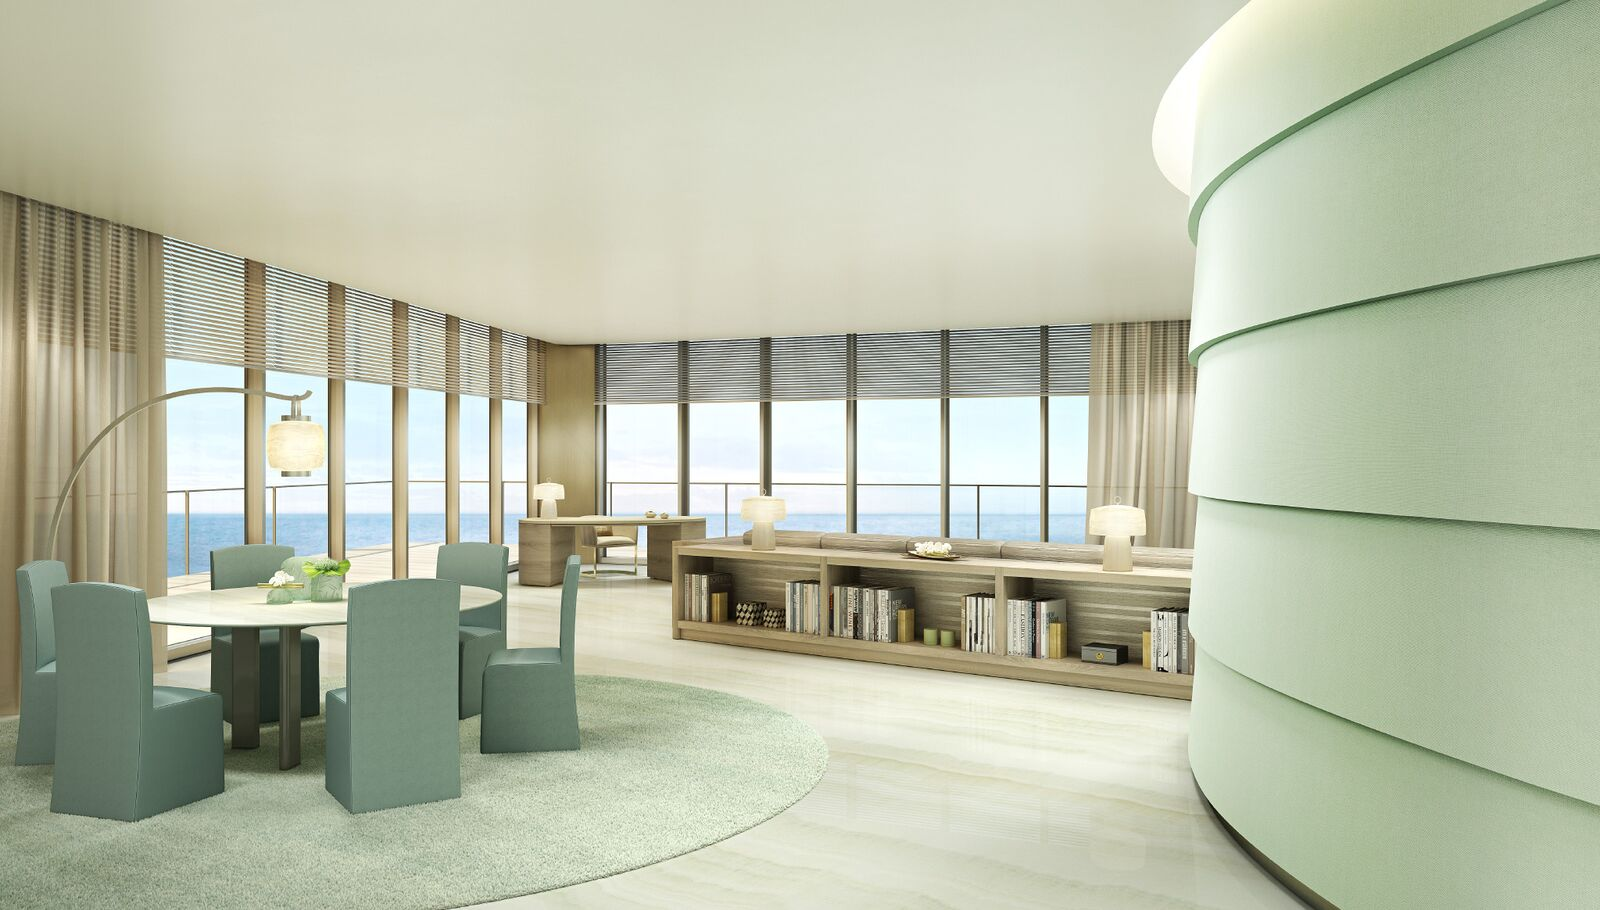 17m High Design Penthouse Designed By Giorgio Armani Soars To The 56th Floor